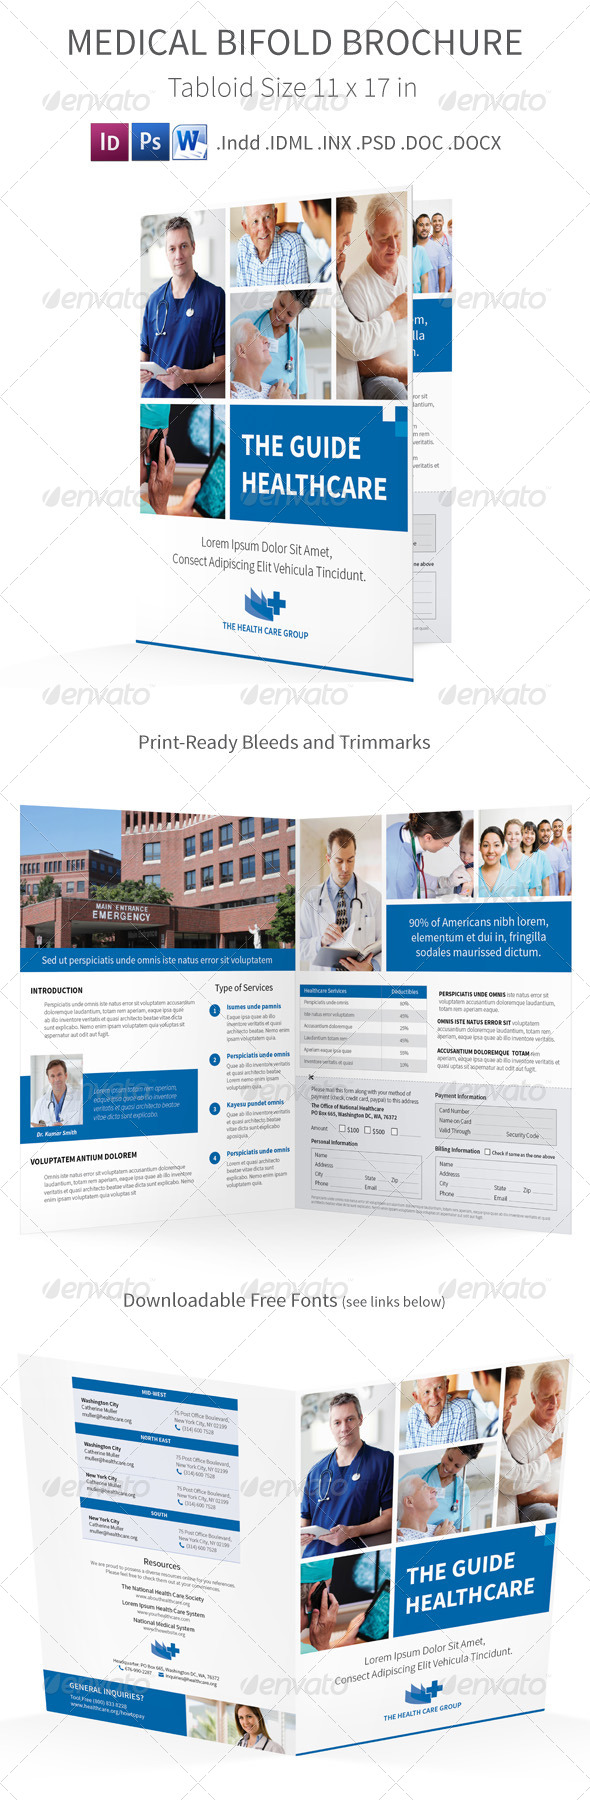 GraphicRiver Medical Bifold Halffold Brochure 7815242